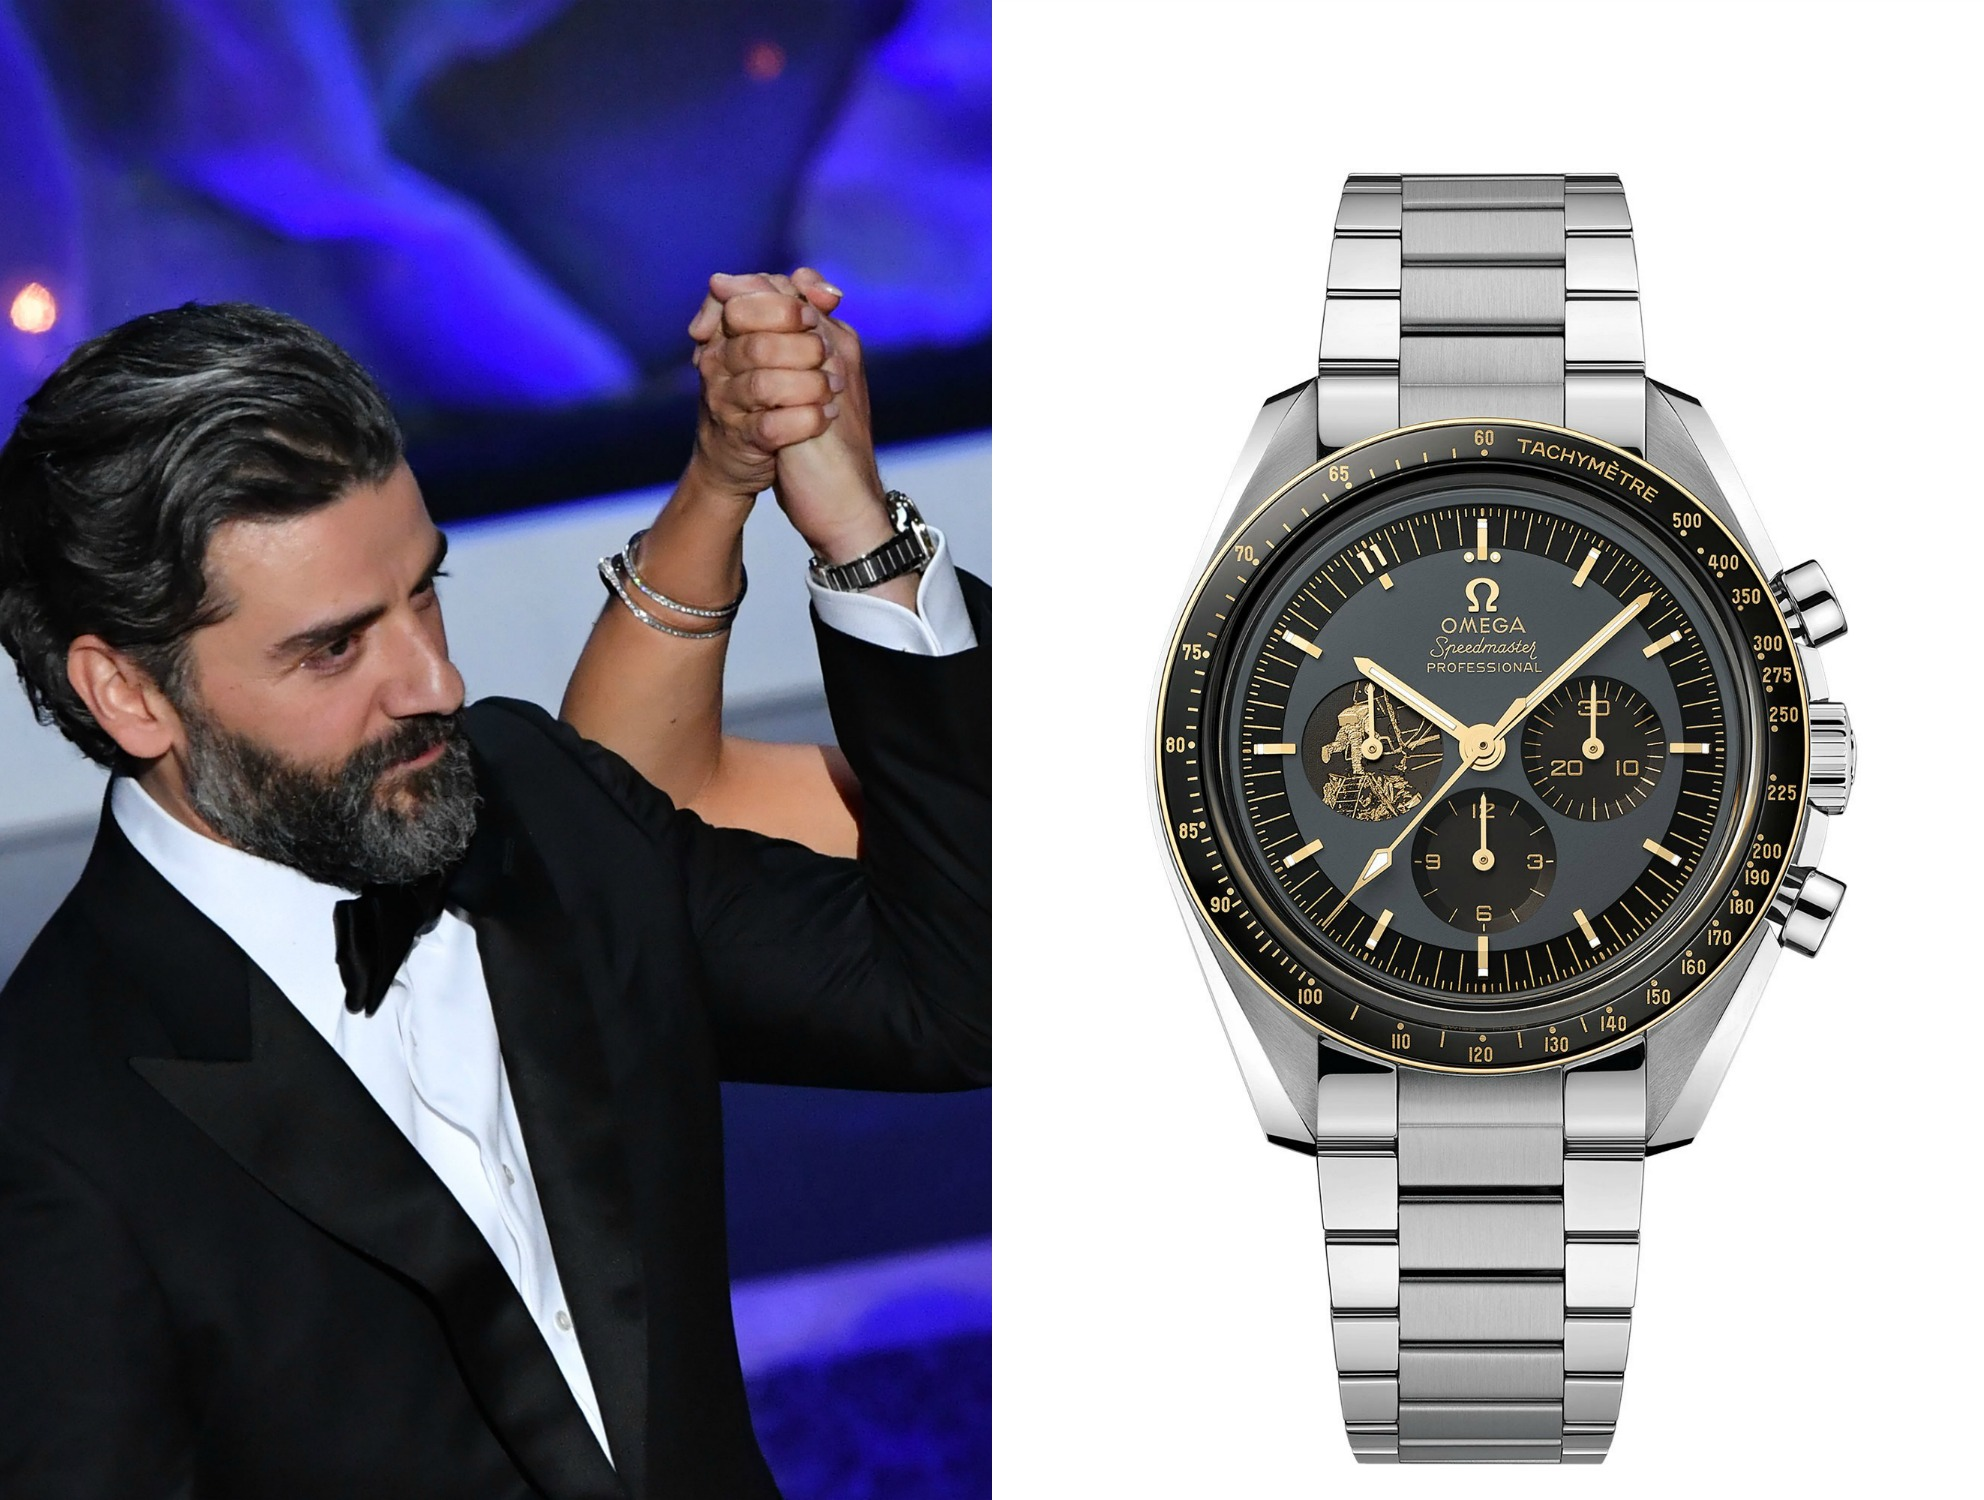 Omega Speedmaster Moonwatch Limited Anniversary Series, oscar isaac